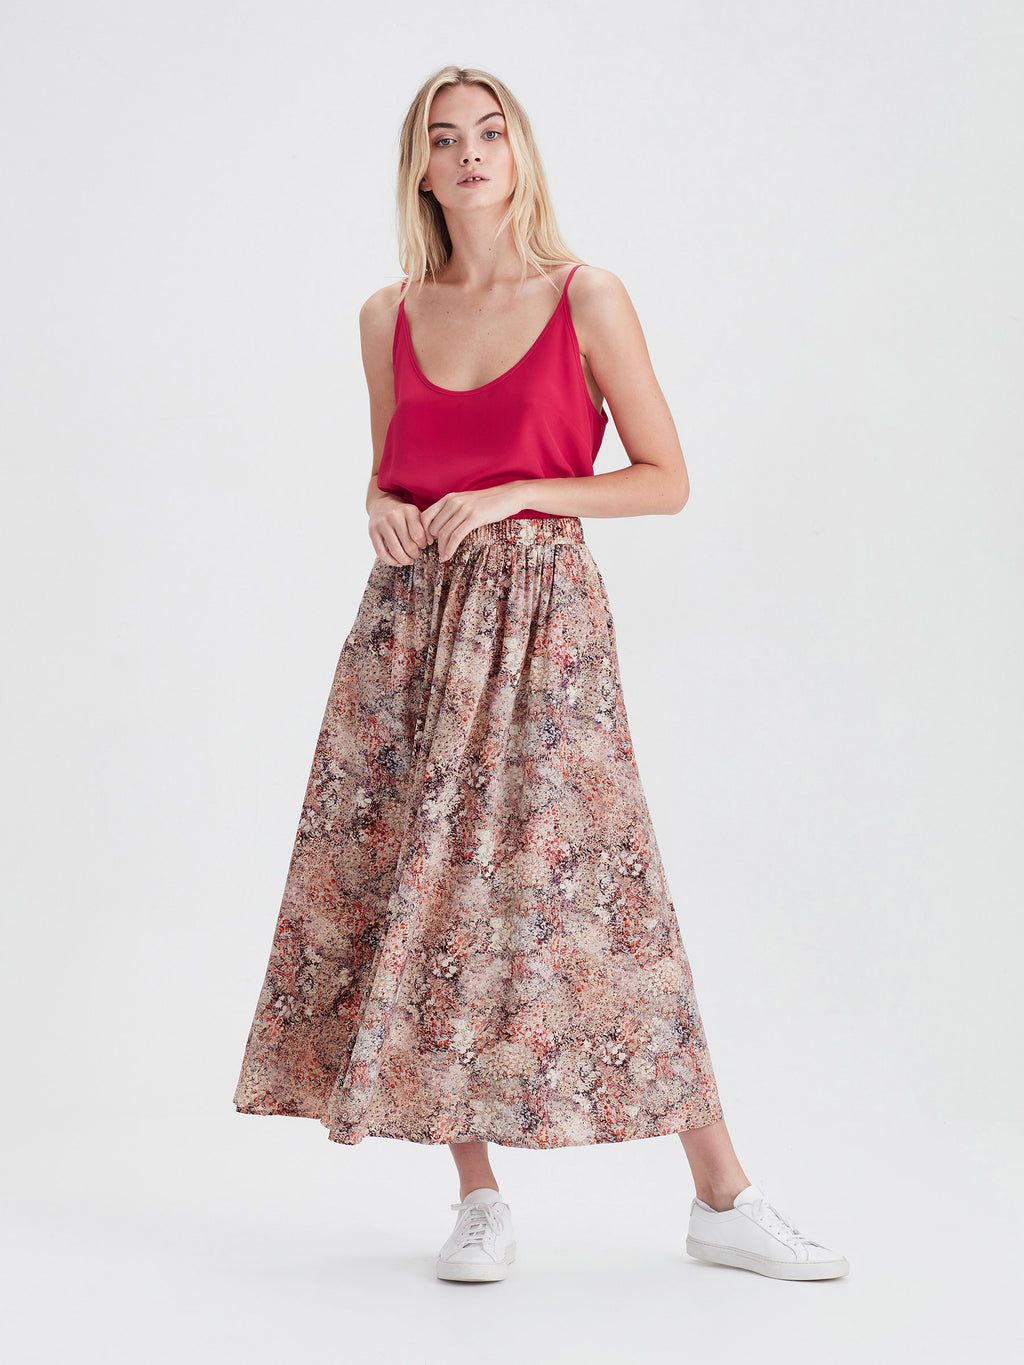 Arcade Skirt (Floral Garden) Bloom